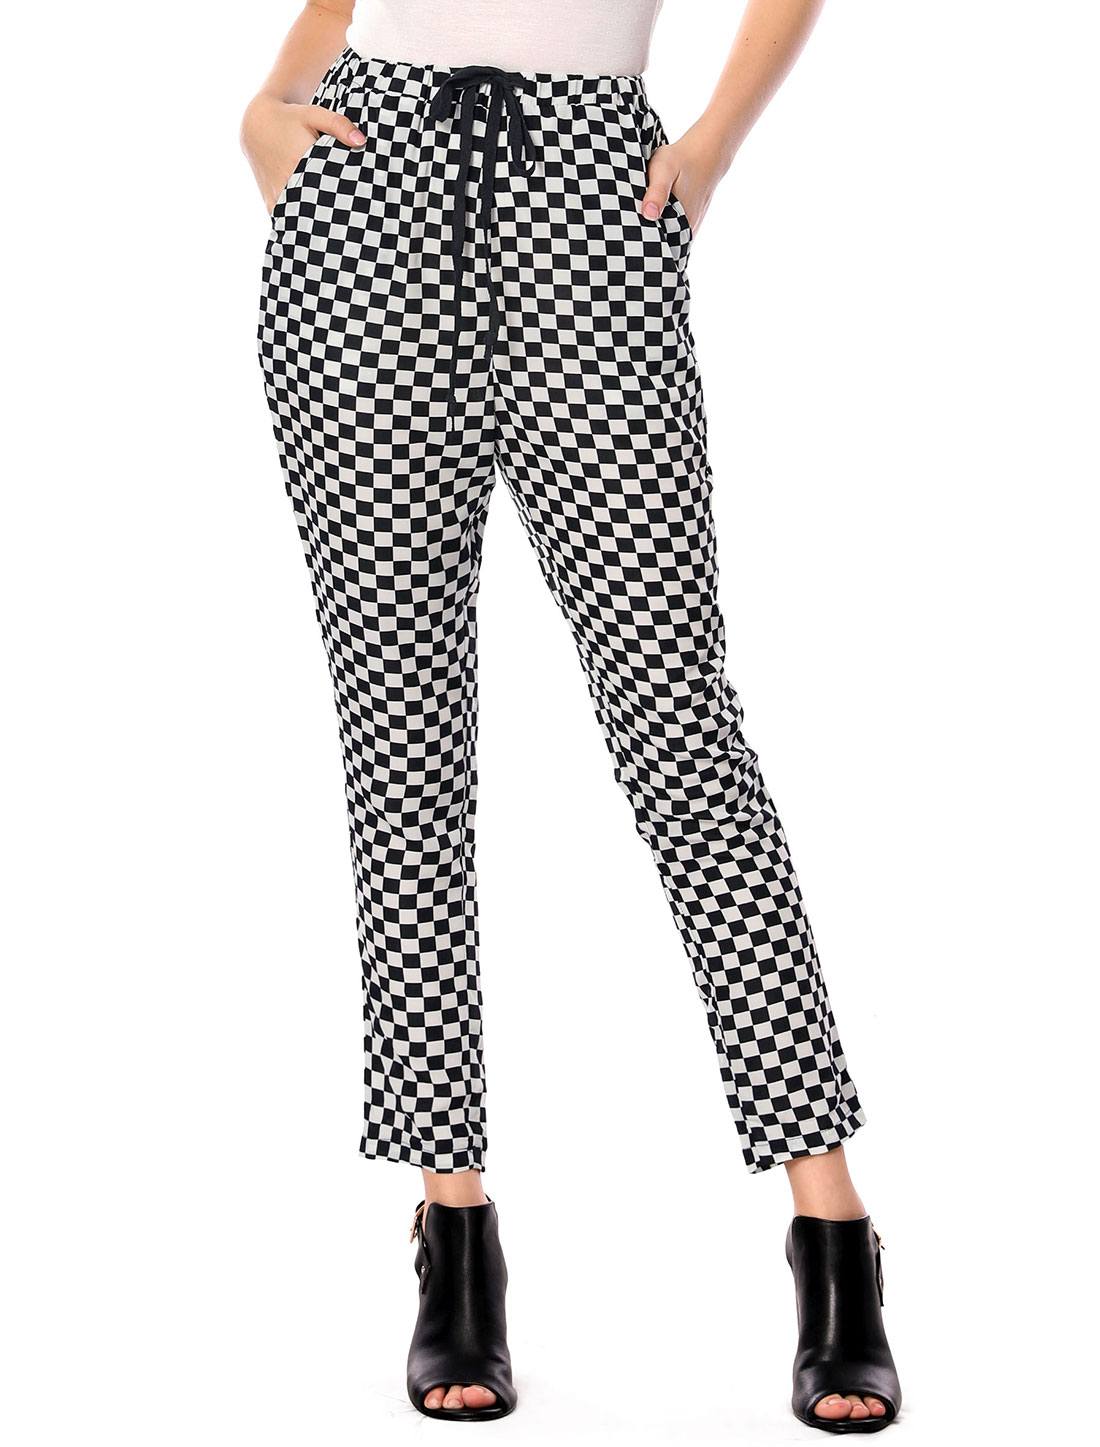 Women Back Pockets Decor Check Pattern Pants Black White S